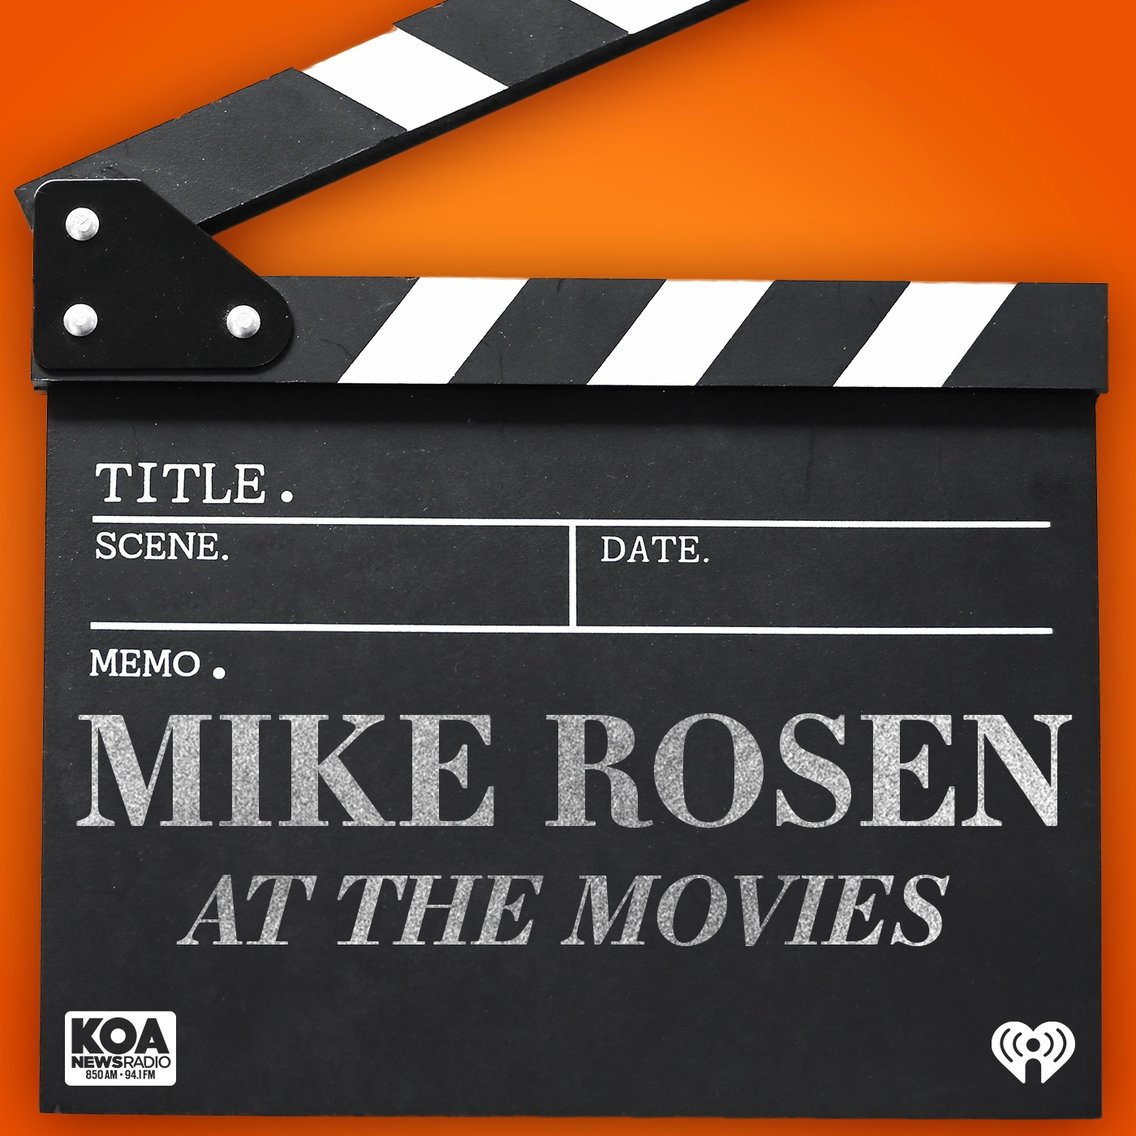 Mike Rosen at the Movies - Cover Image